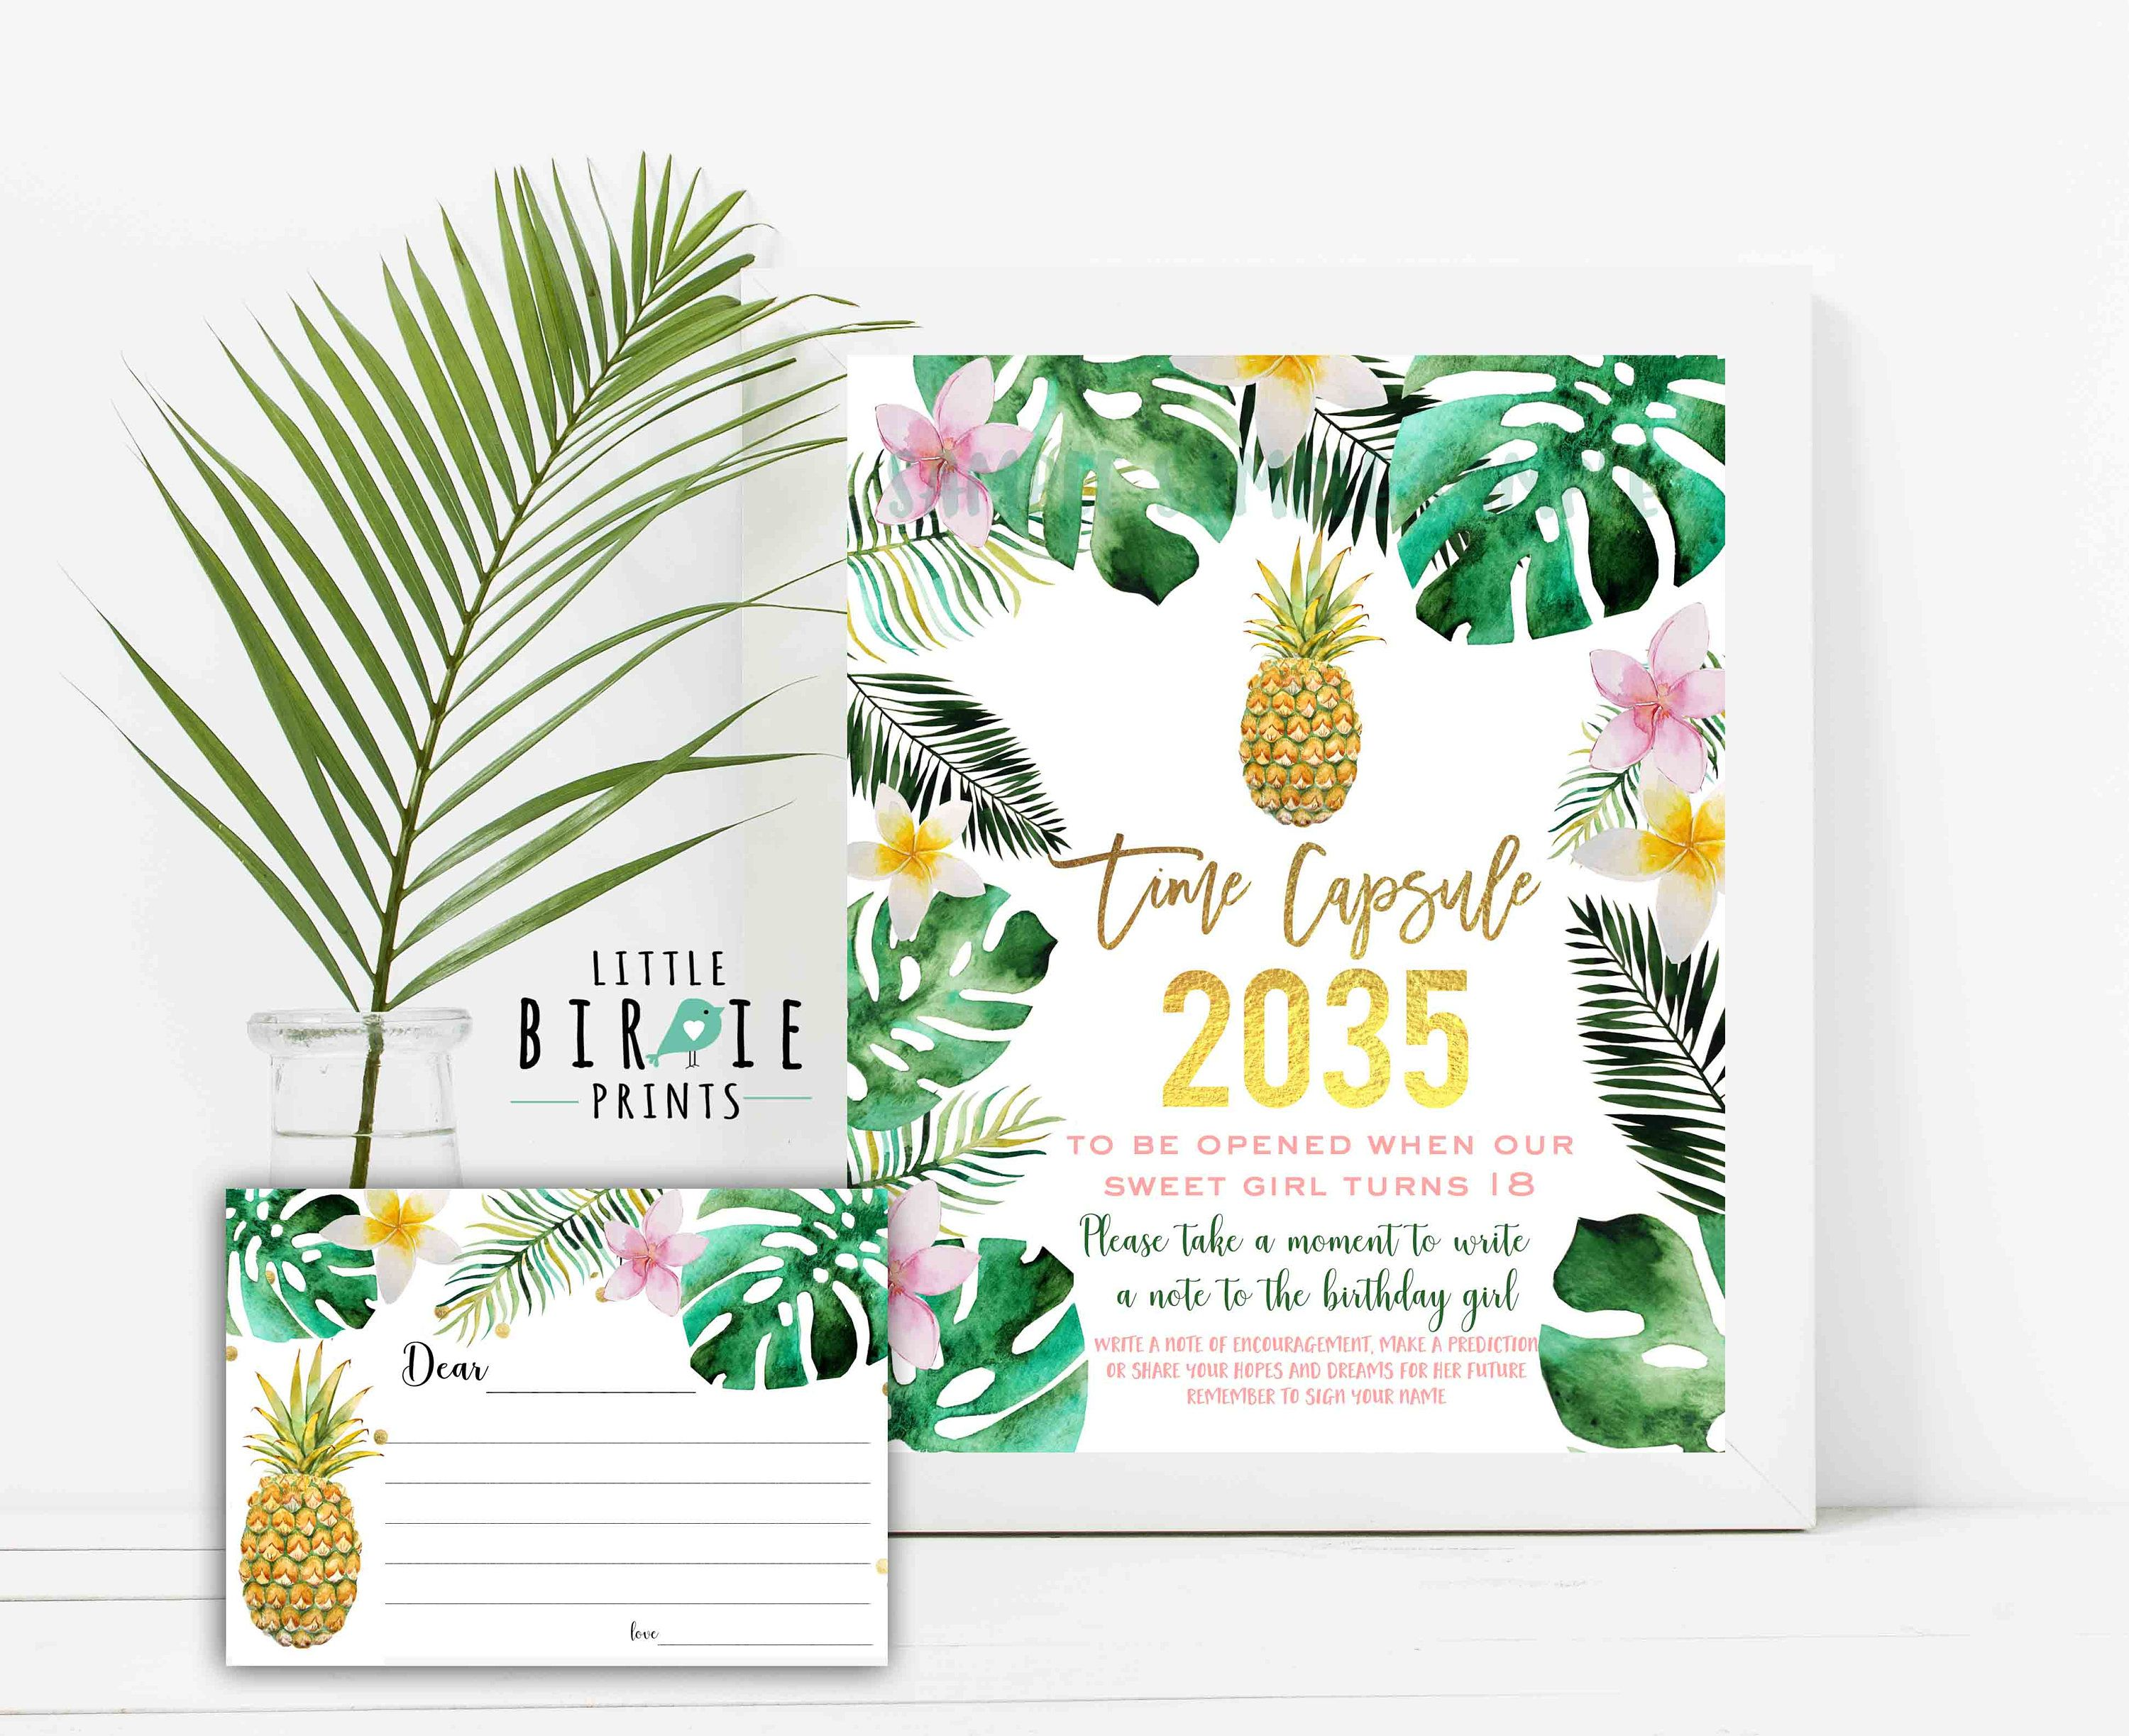 PINEAPPLE TIME CAPSULE SIGN AND CARDS FIRST BIRTHDAY TIME CAPSULE